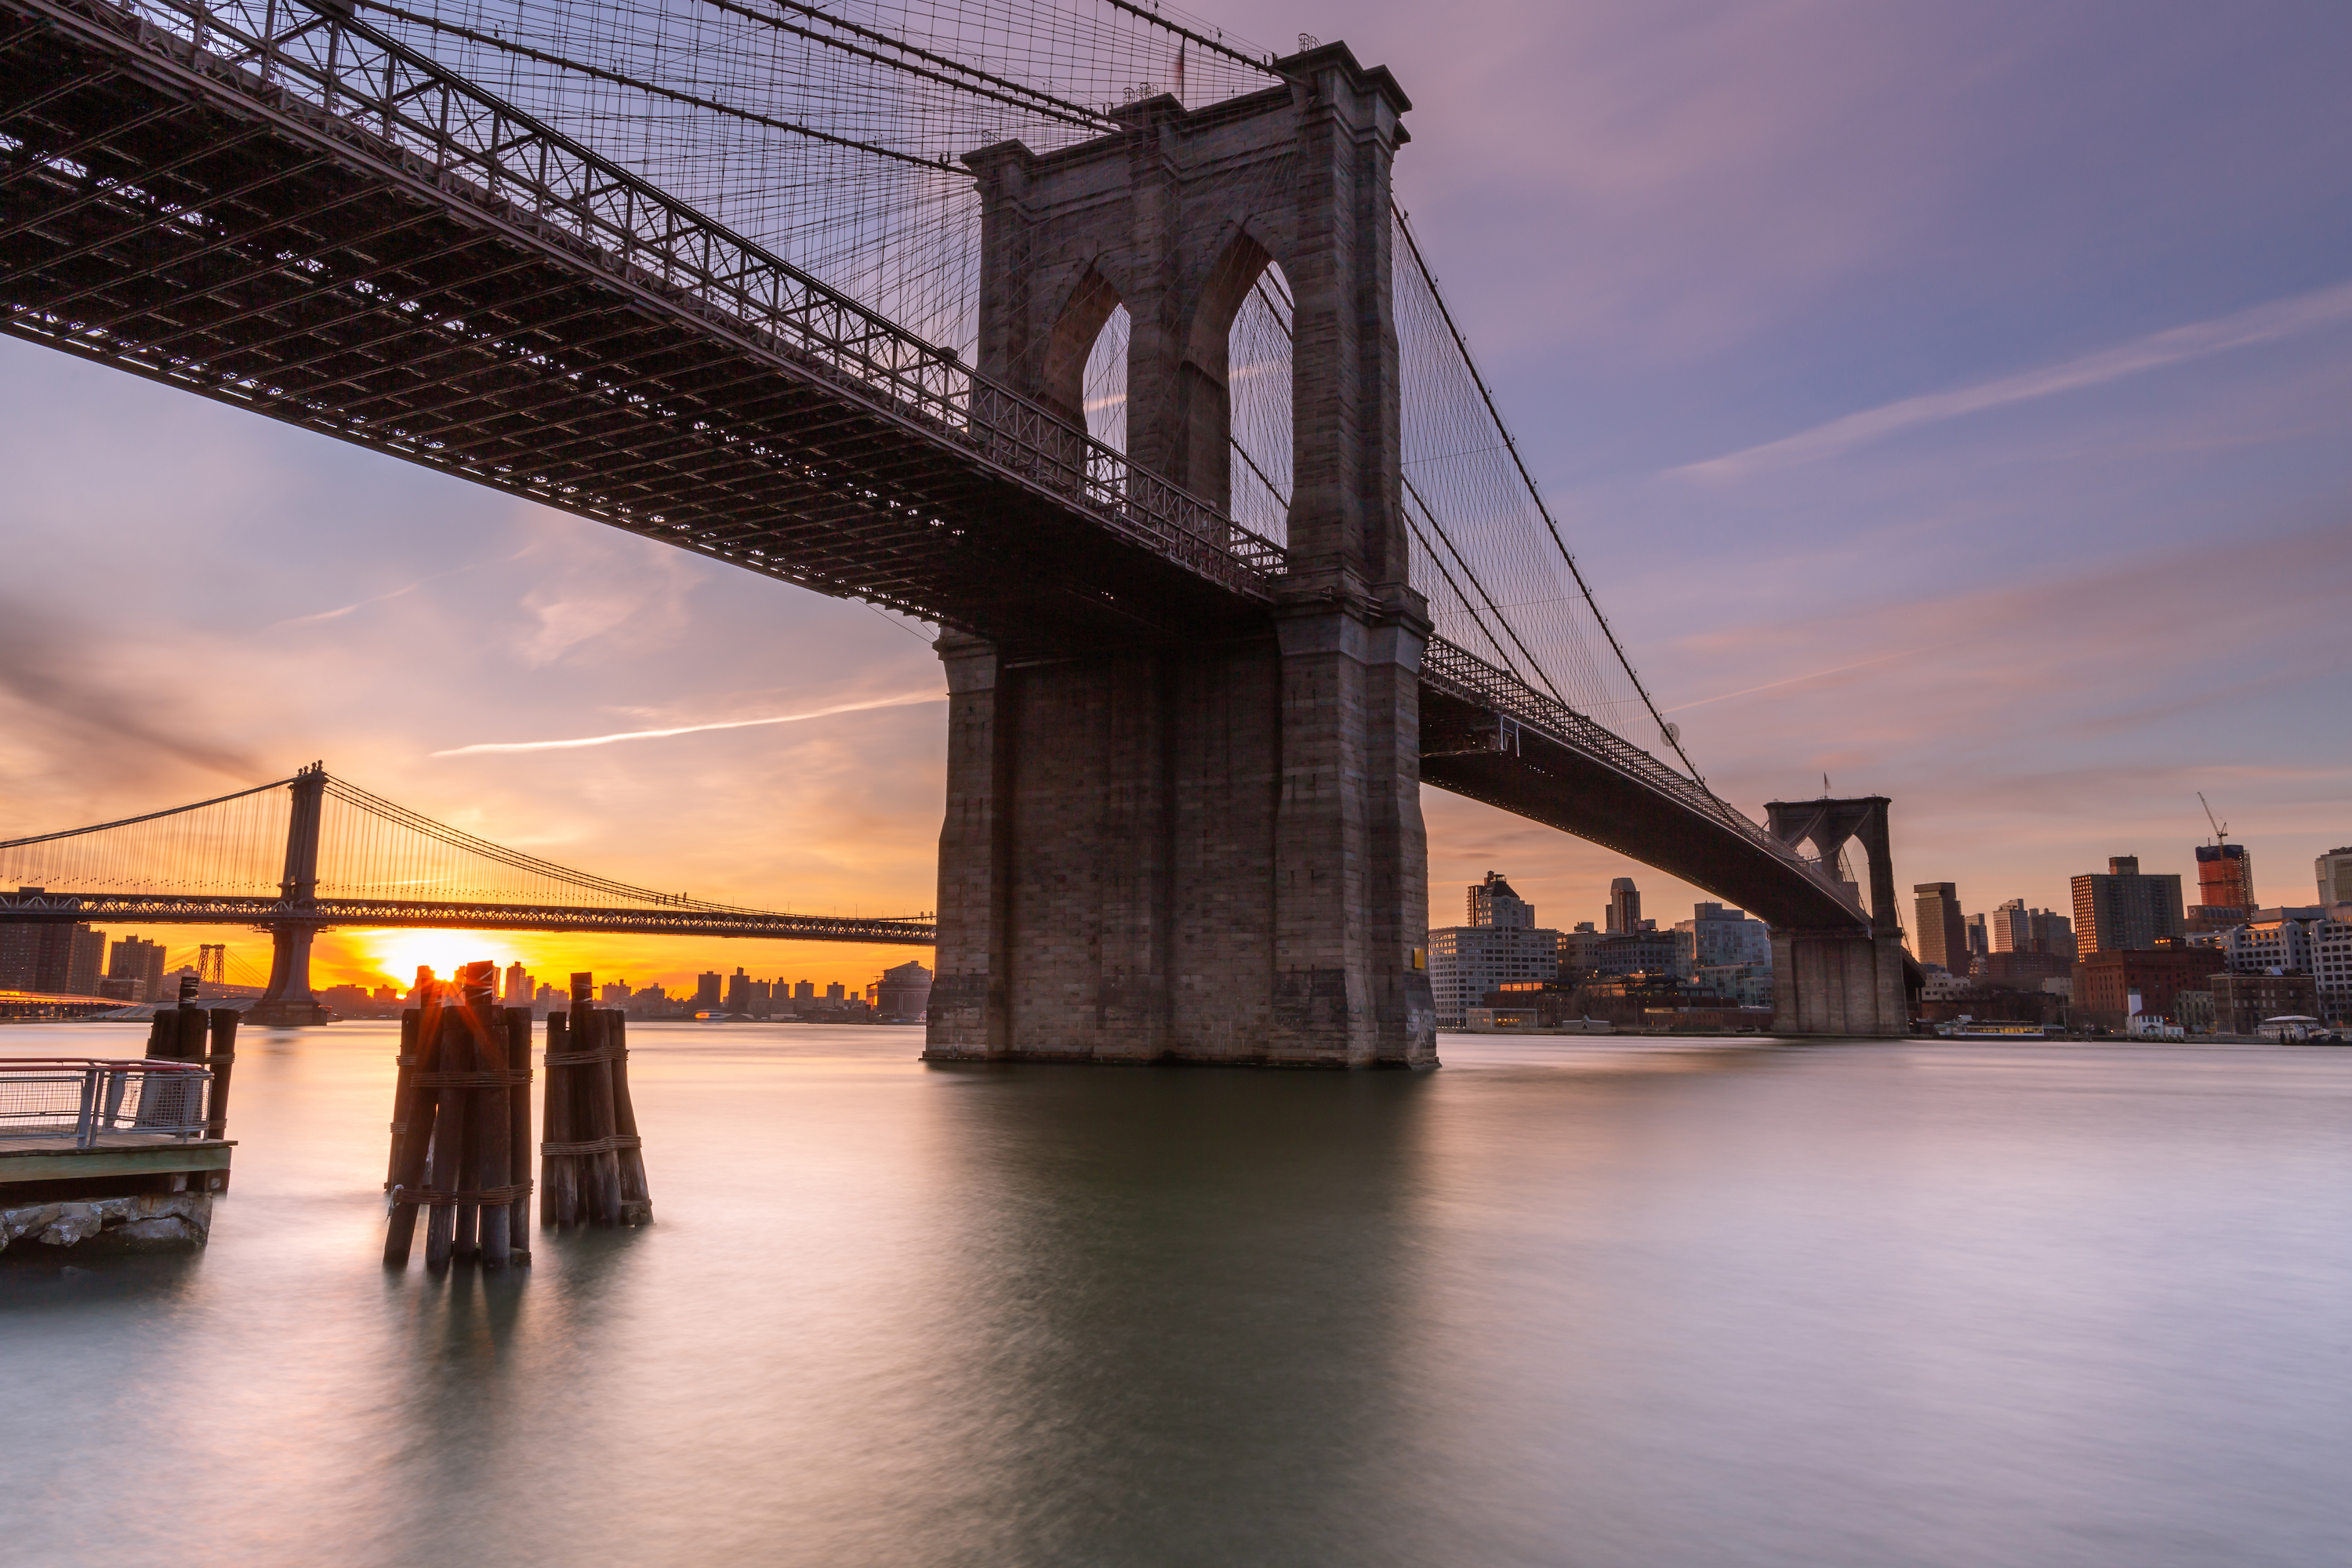 Brooklyn Bridge at sunrise from East River example image 1